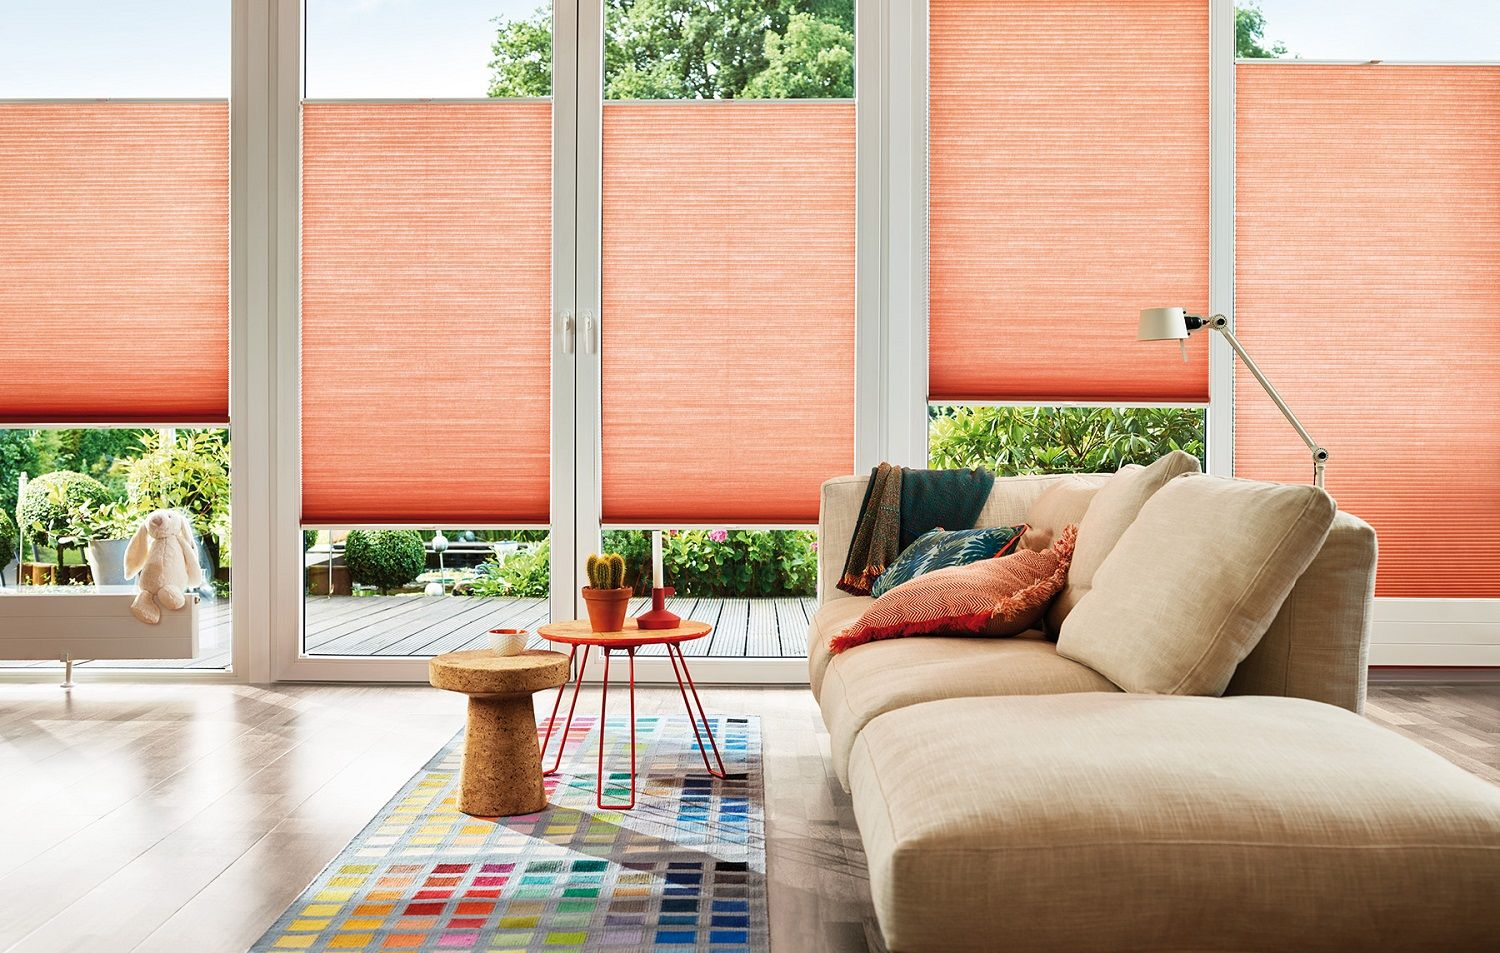 peachy expensive home decor. Duette blinds for the living room  Energy saving Contemporary peach colour inspiration